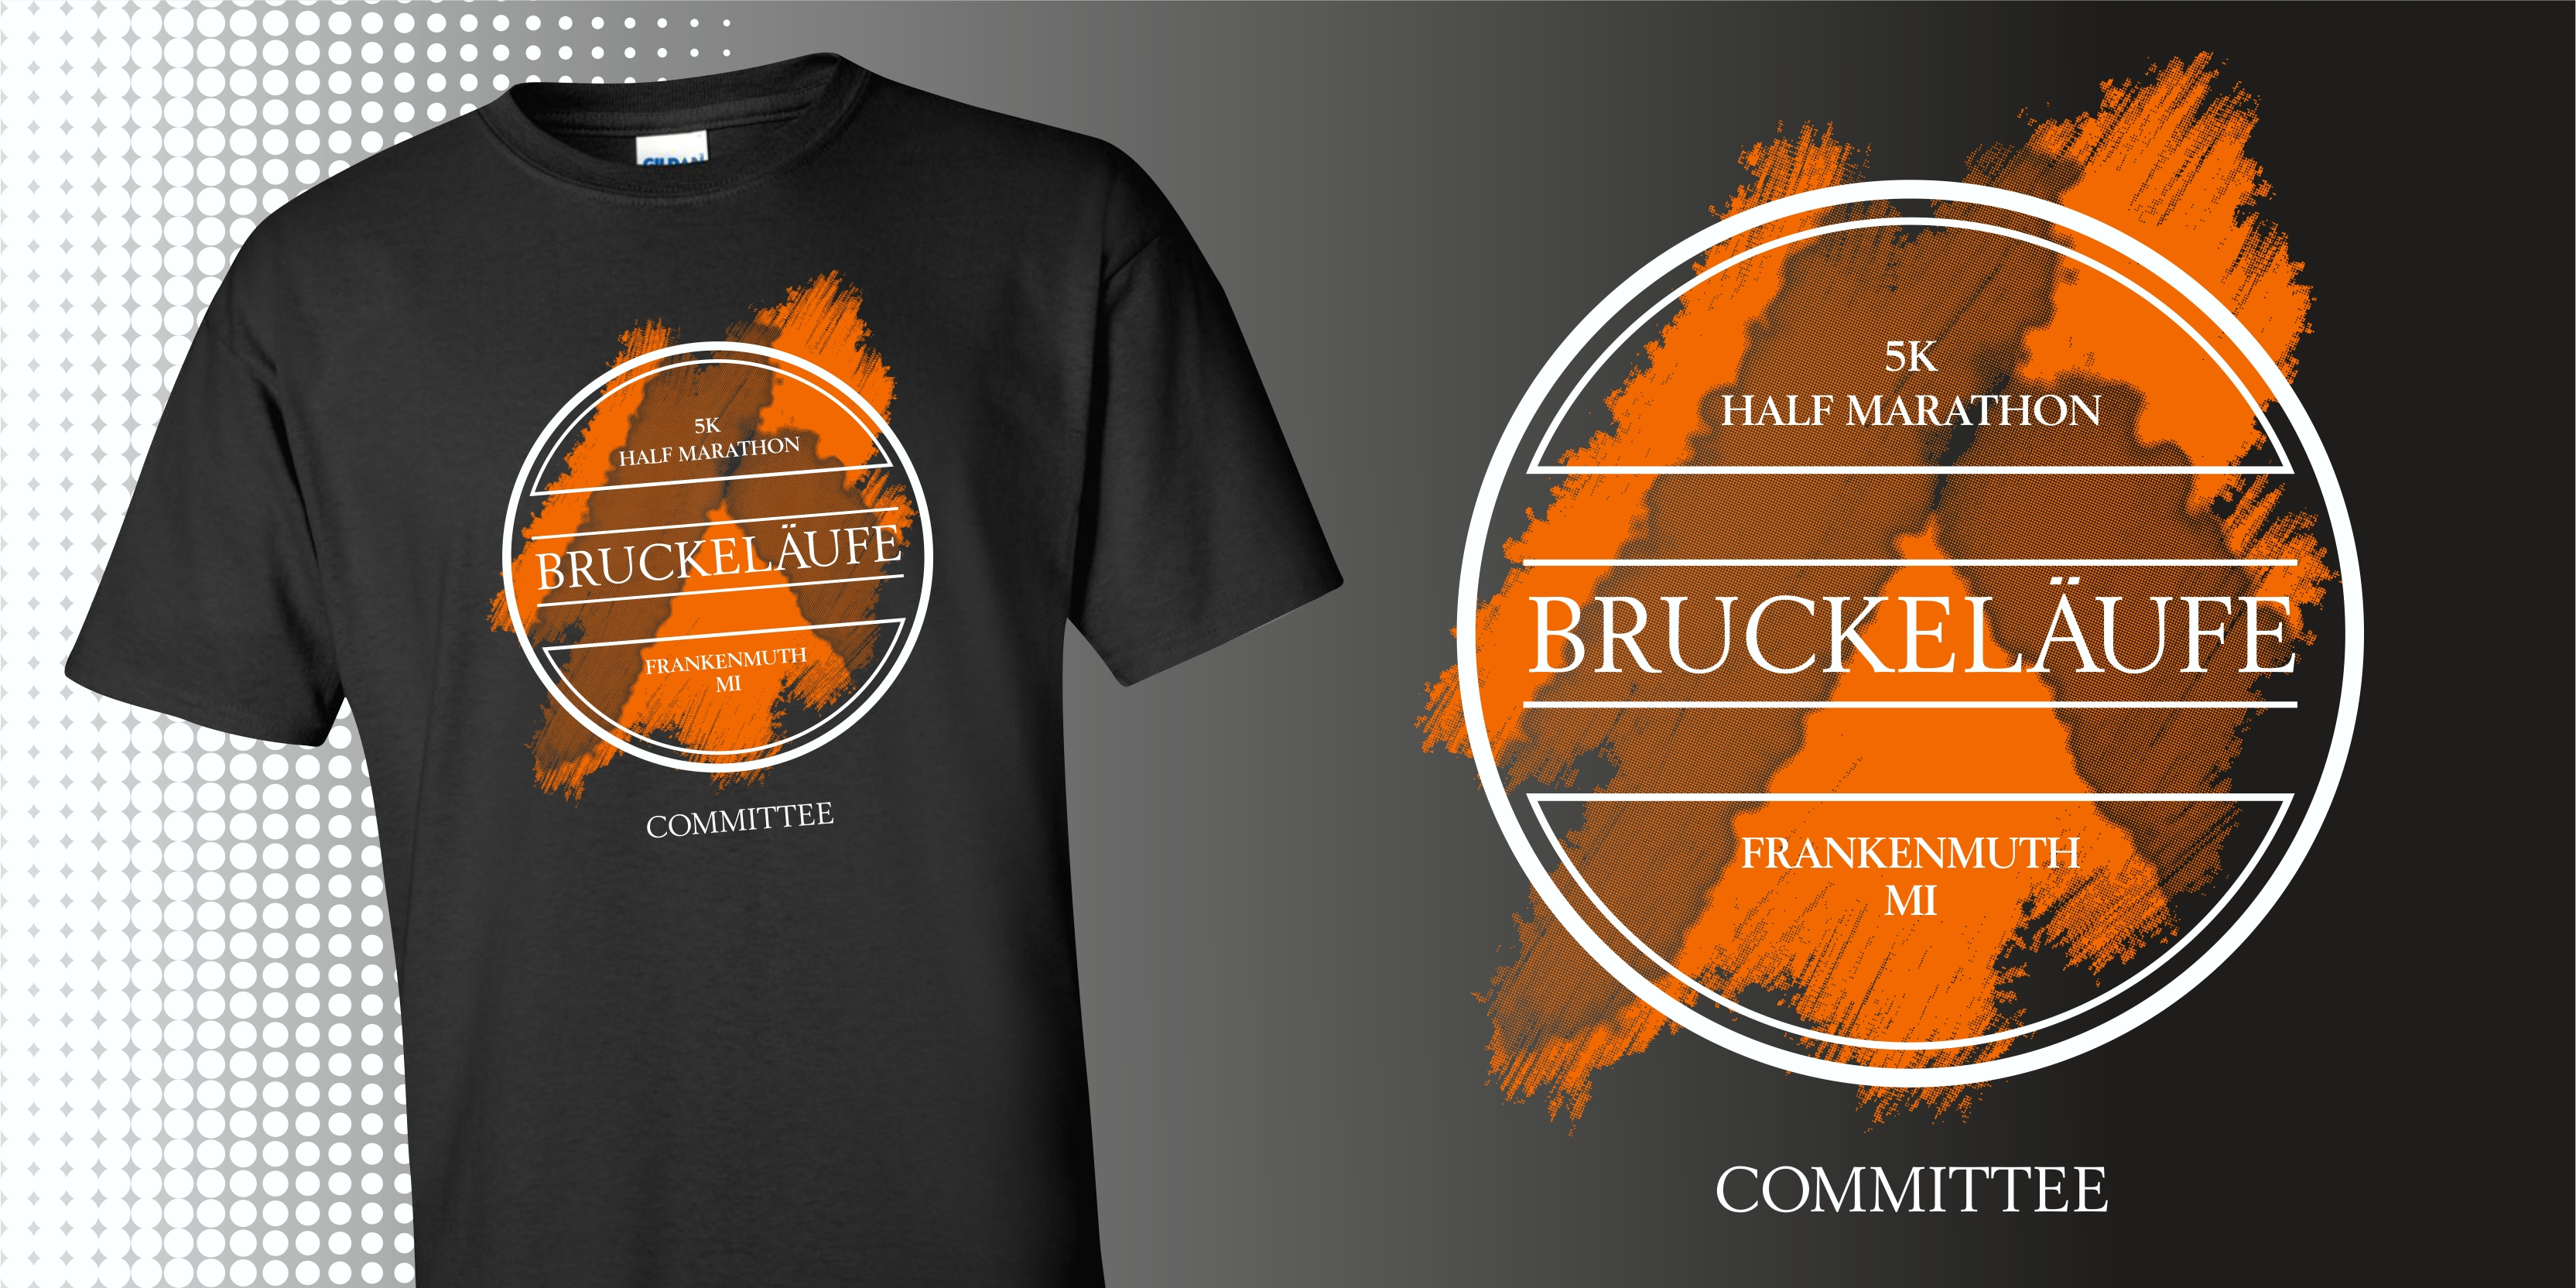 Bruckelaufe Committee Shirts 2015